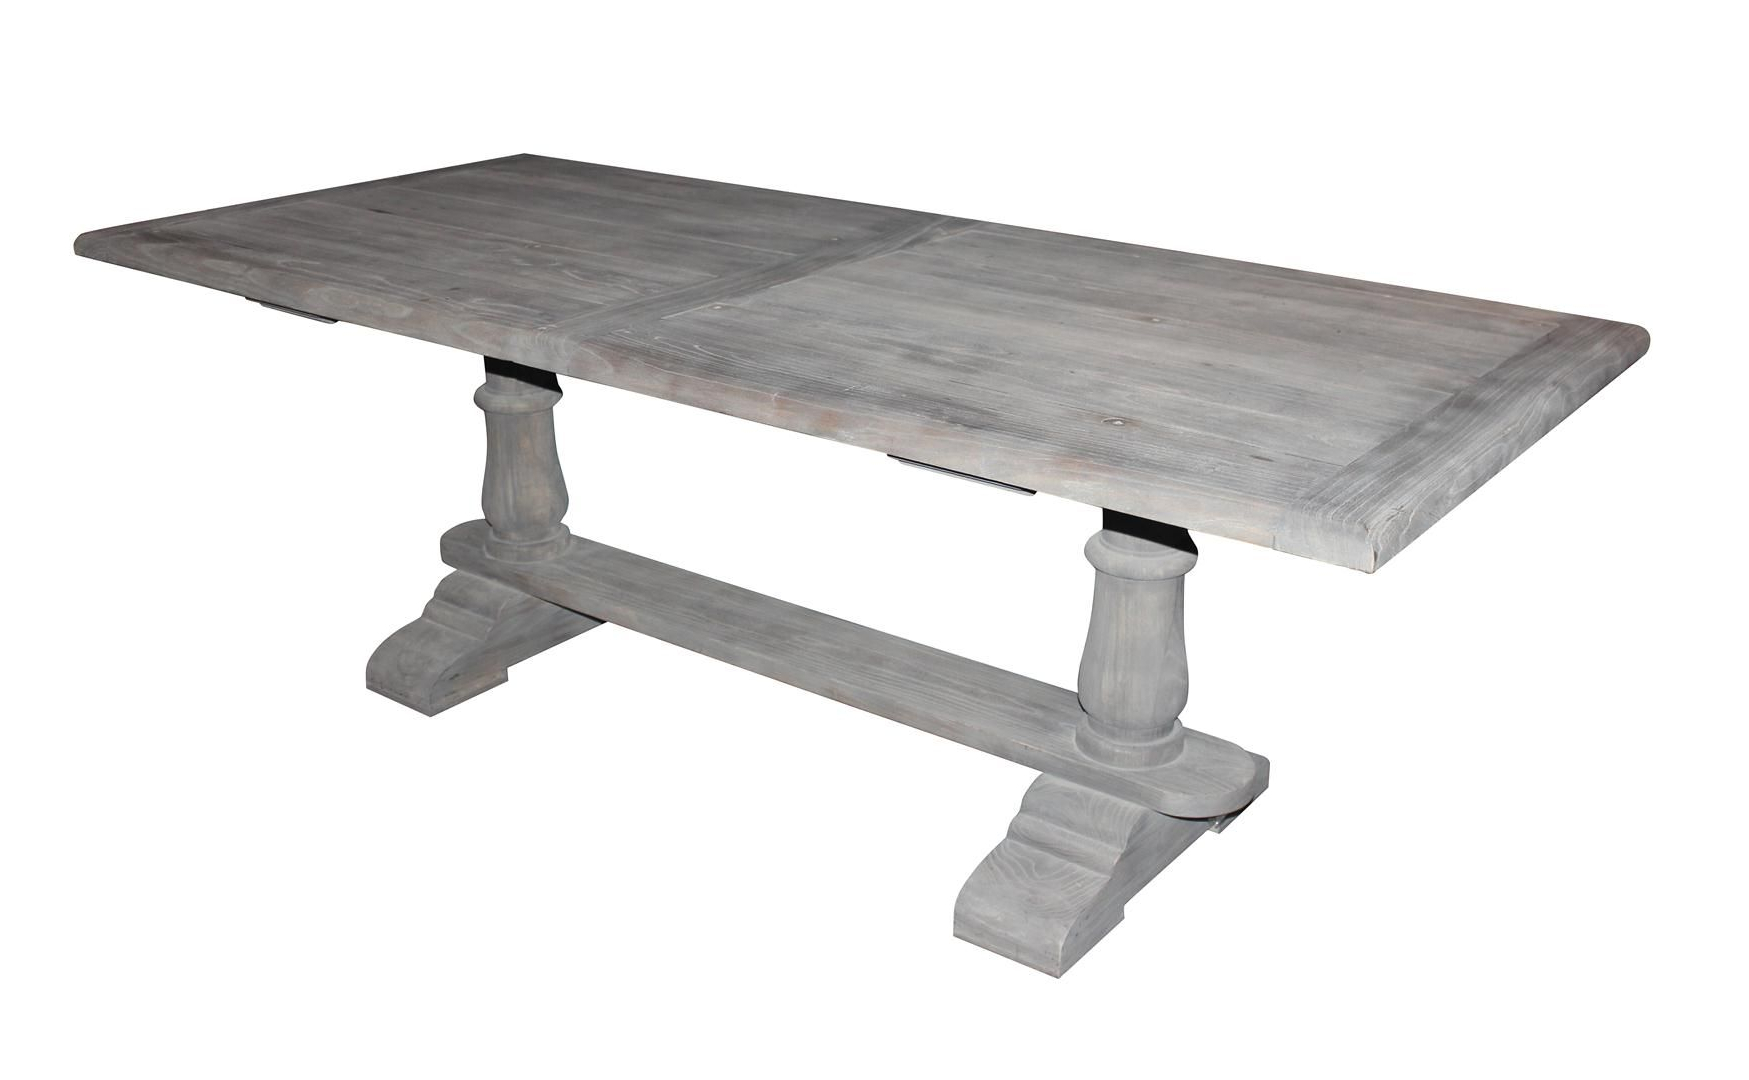 Solid Wood Dining Table With Gray Washed Out Finish Pertaining To Well Known Distressed Grey Finish Wood Classic Design Dining Tables (View 3 of 30)